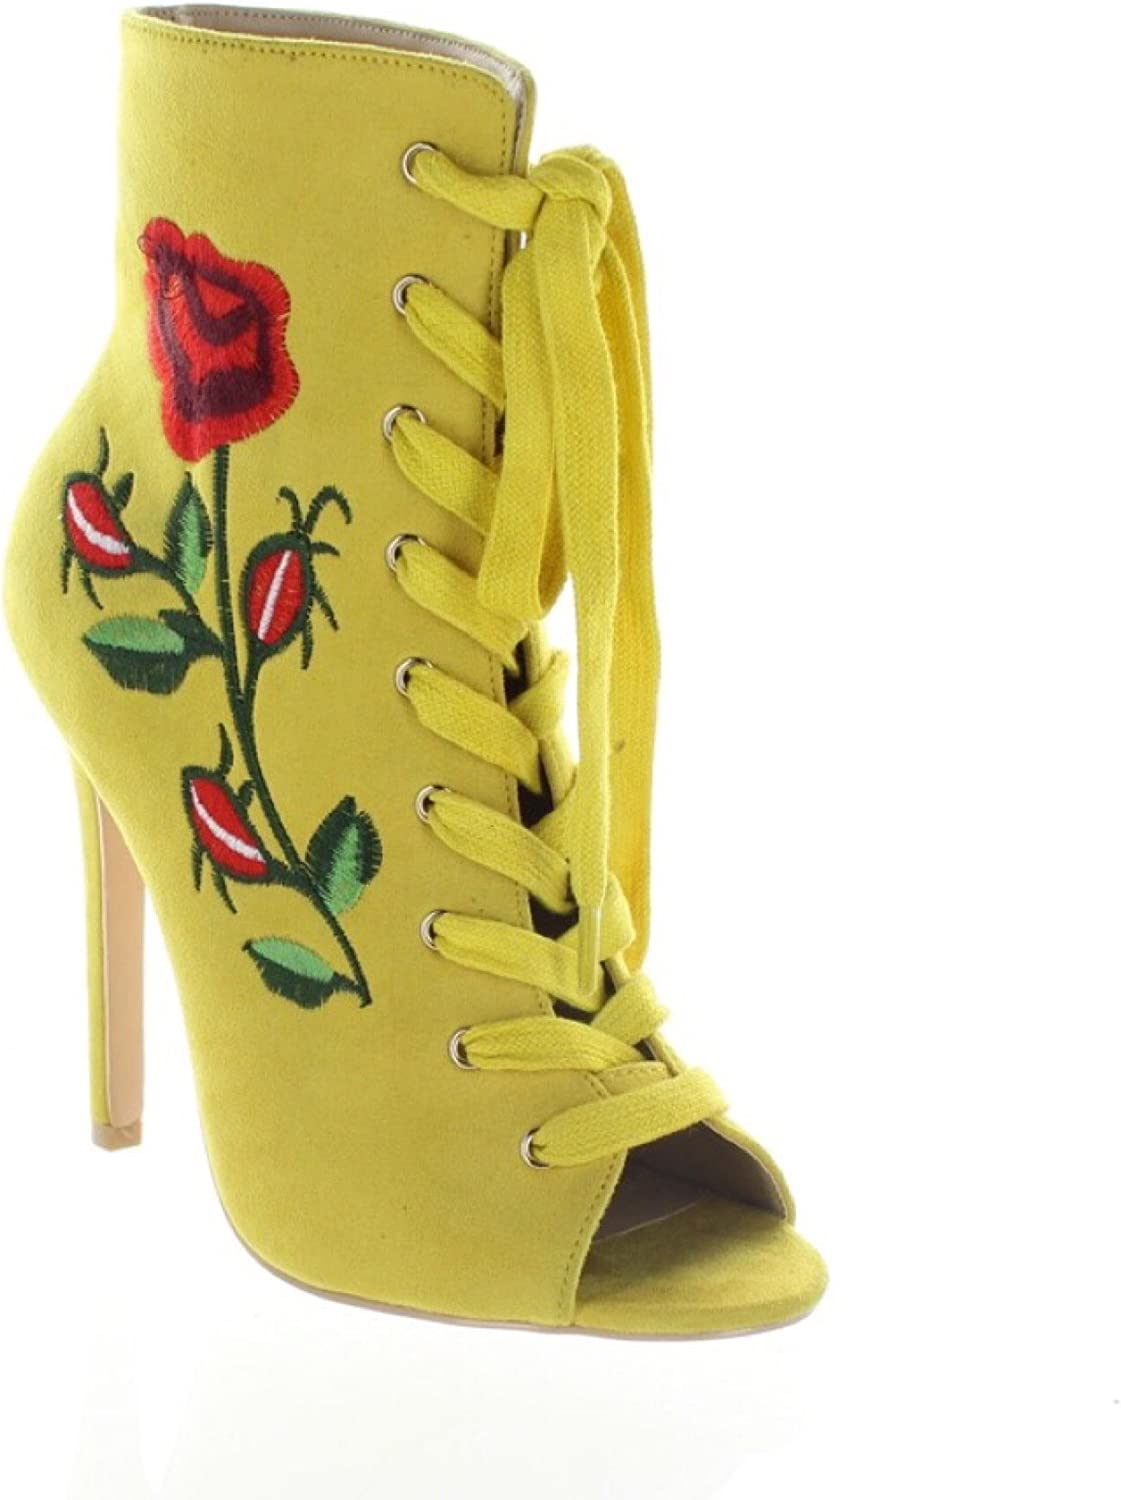 Mona Mia Embroidered Floral pink Lace Up Ankle Boot - Mustard Yellow